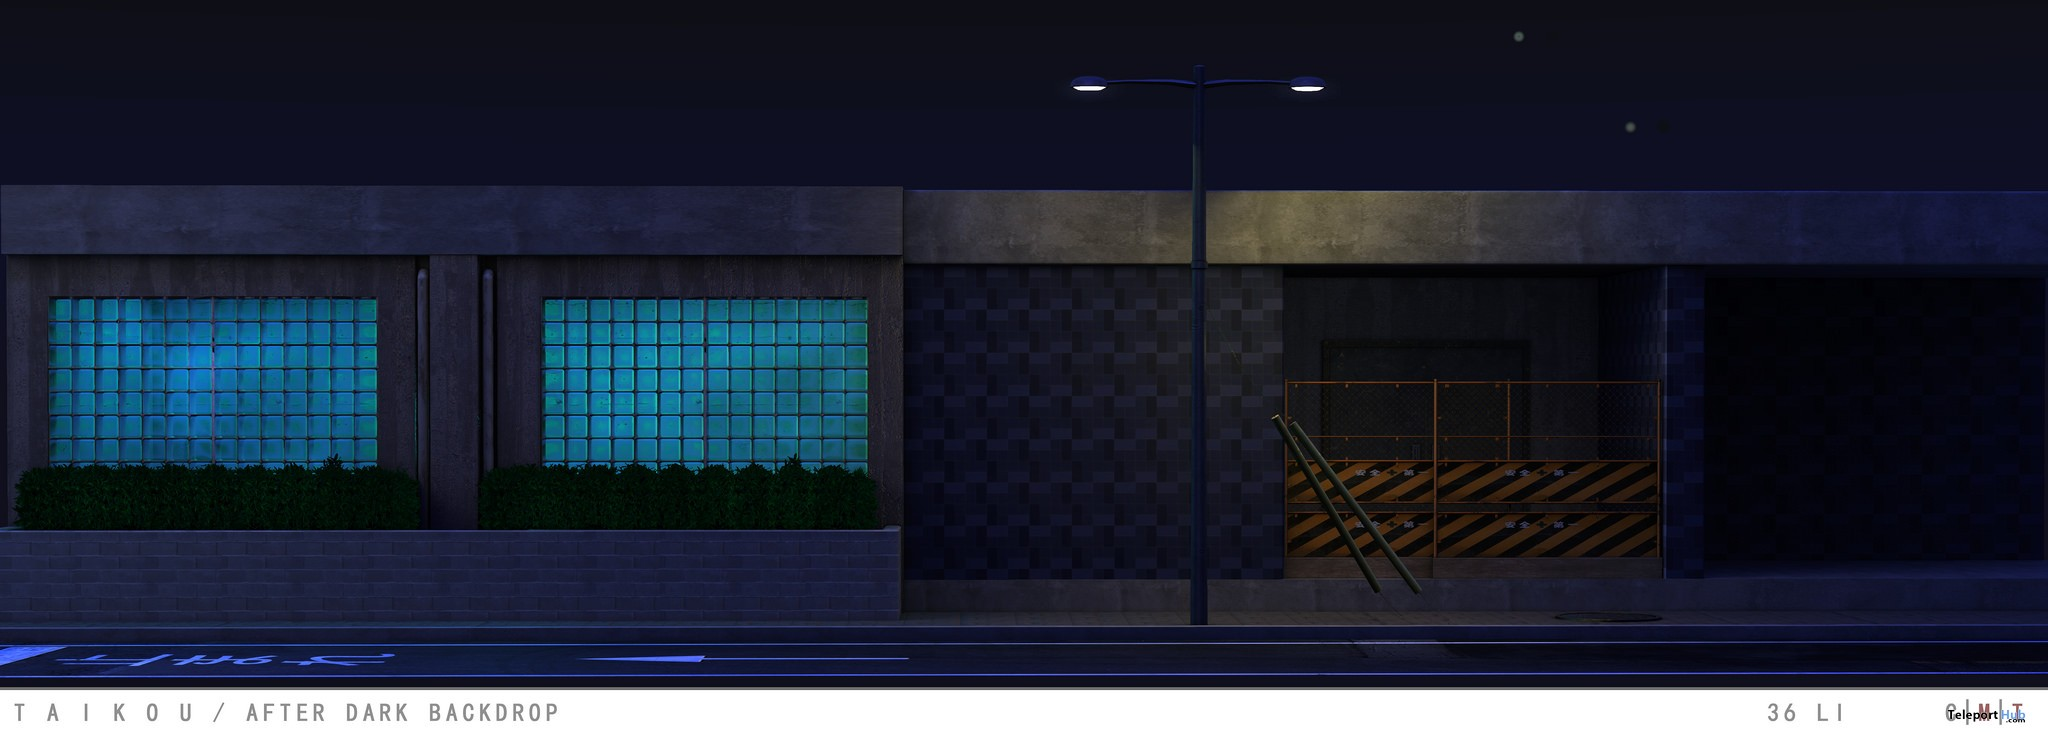 After Dark Backdrop March 2018 Group Gift by Taikou - Teleport Hub - teleporthub.com